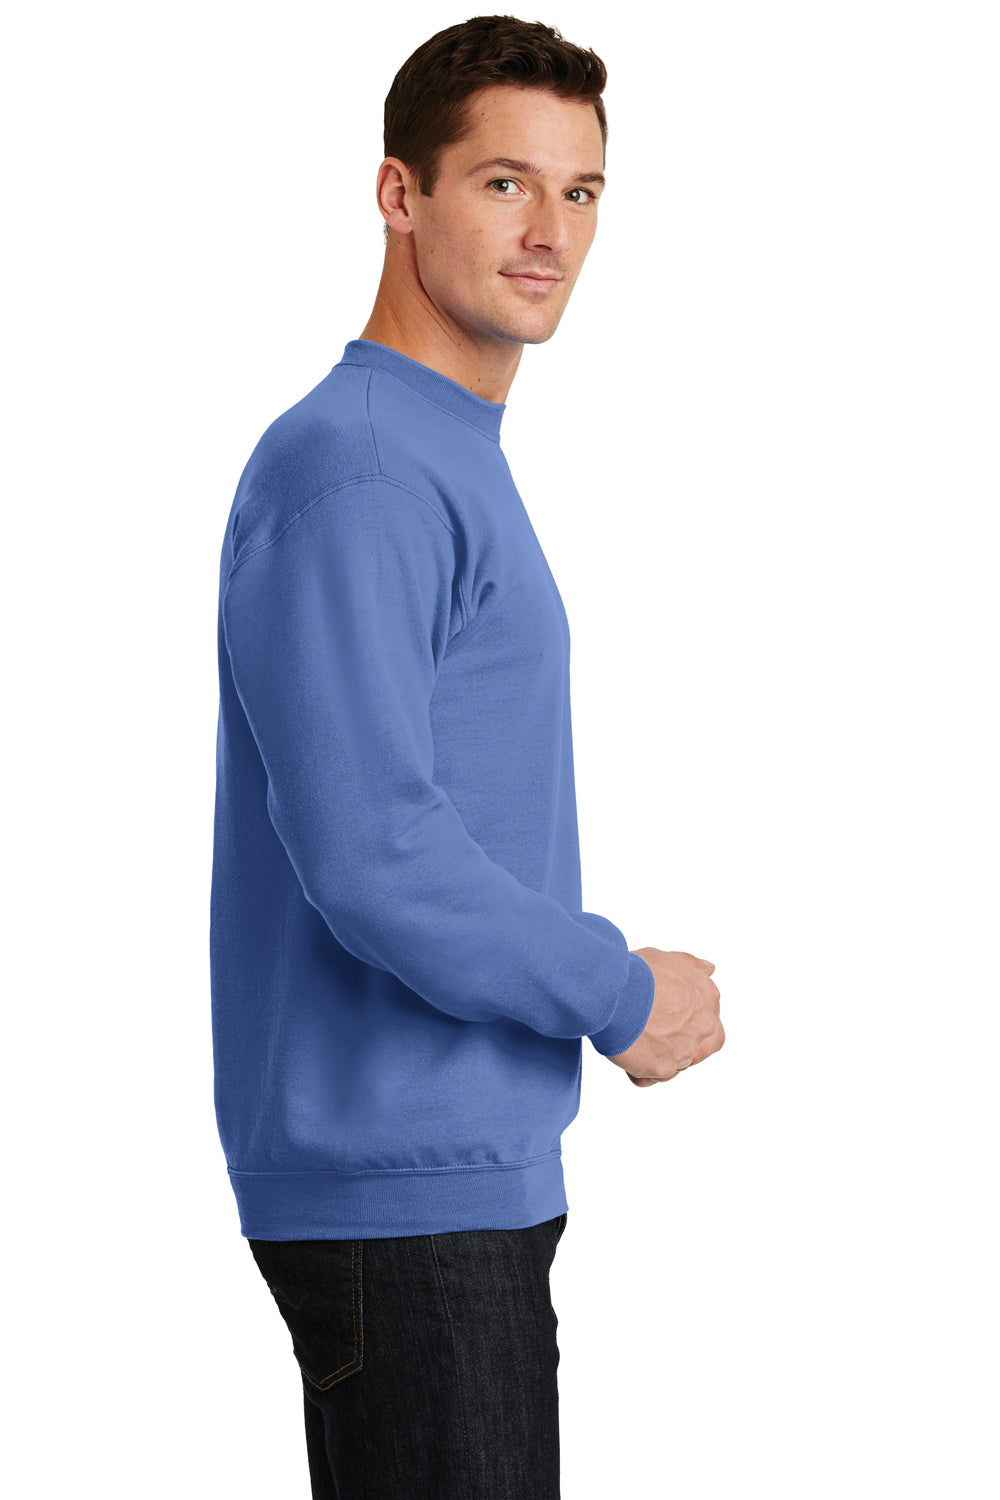 Port & Company PC78 Mens Core Fleece Crewneck Sweatshirt Carolina Blue Side